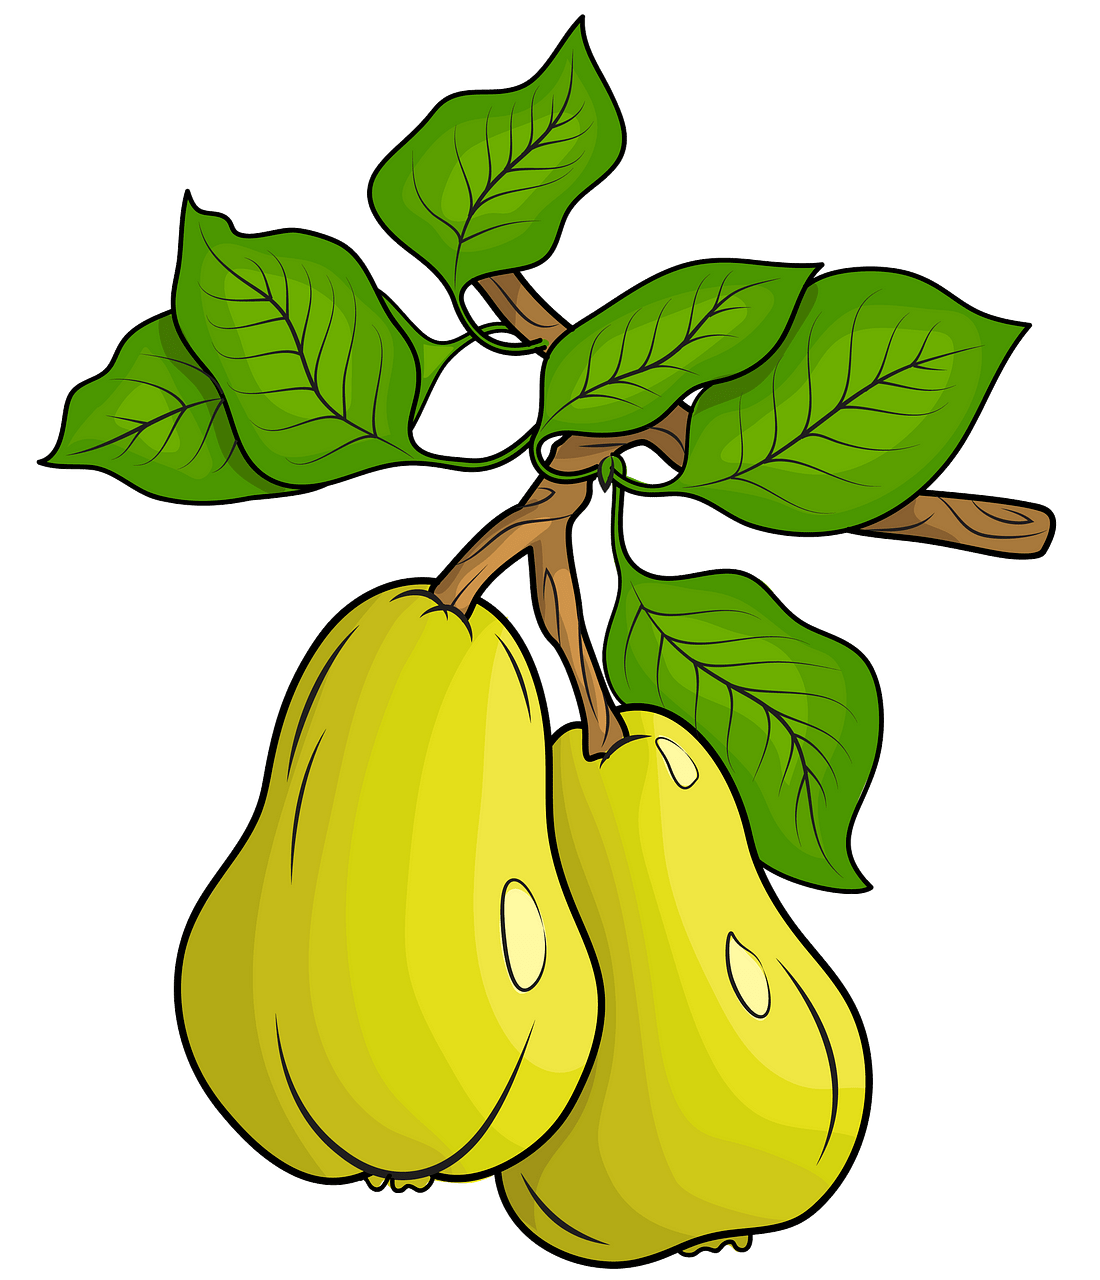 Two Pears clipart. Free download..